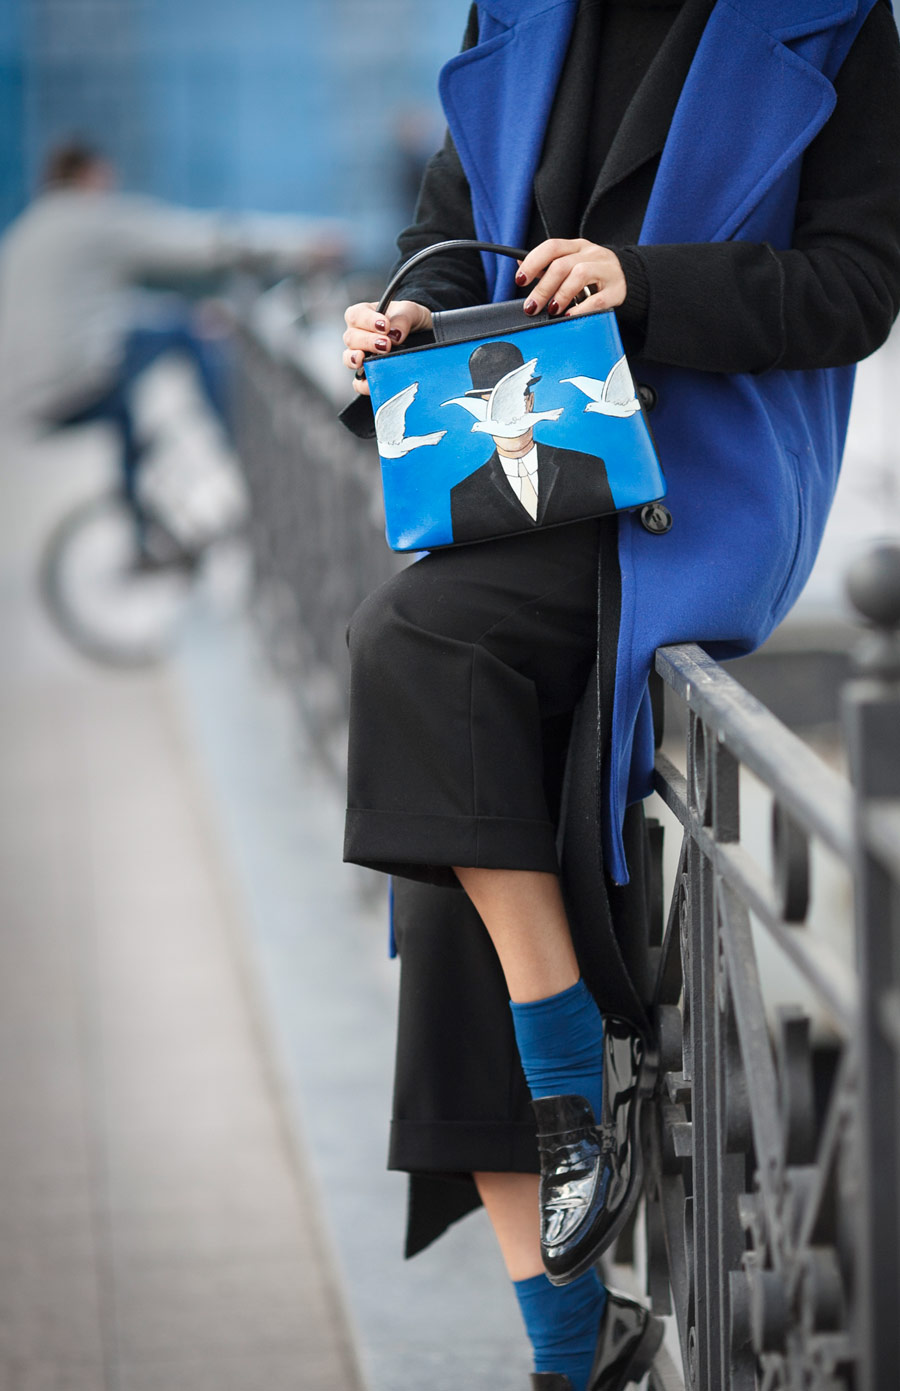 fashion details, blue accents in fashion,